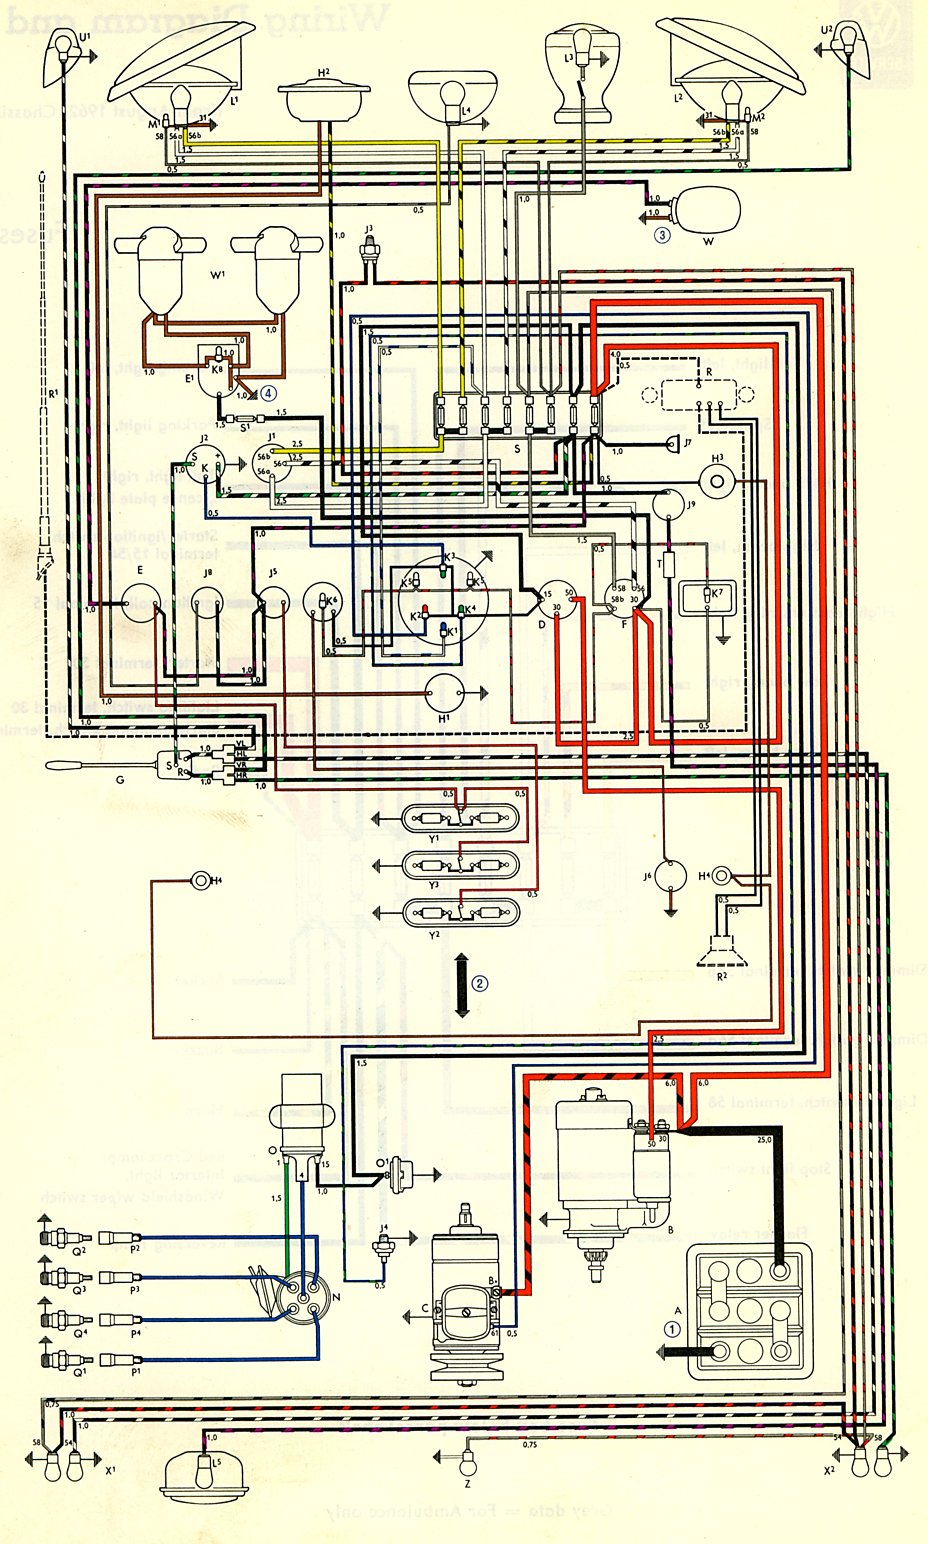 bus_63 1963 bus wiring diagram thegoldenbug com 1963 vw wiring diagram at alyssarenee.co